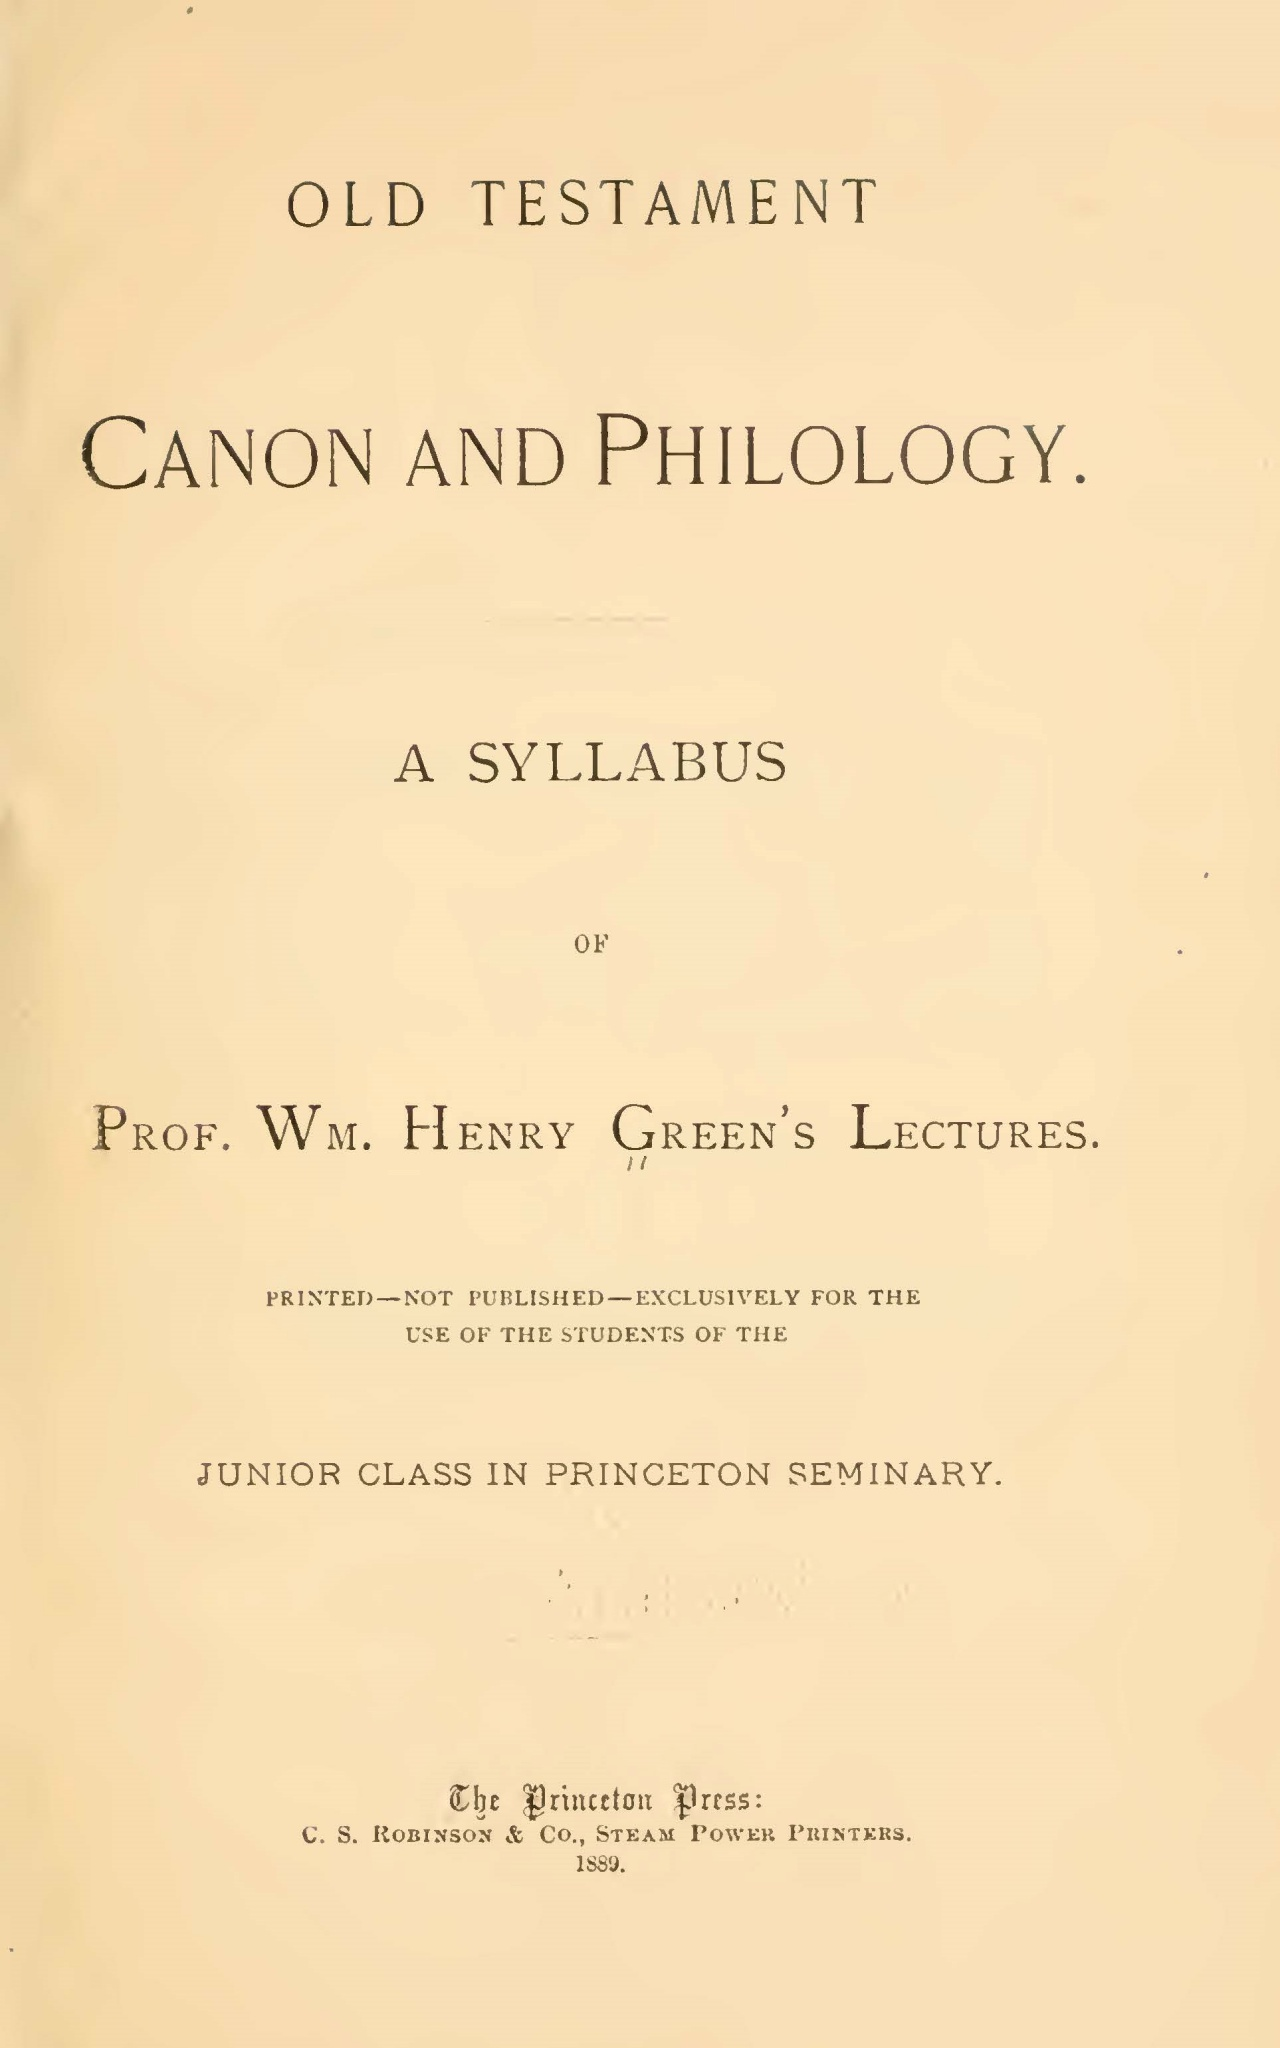 Green, William Henry, Old Testament Canon and Philology Title Page.jpg